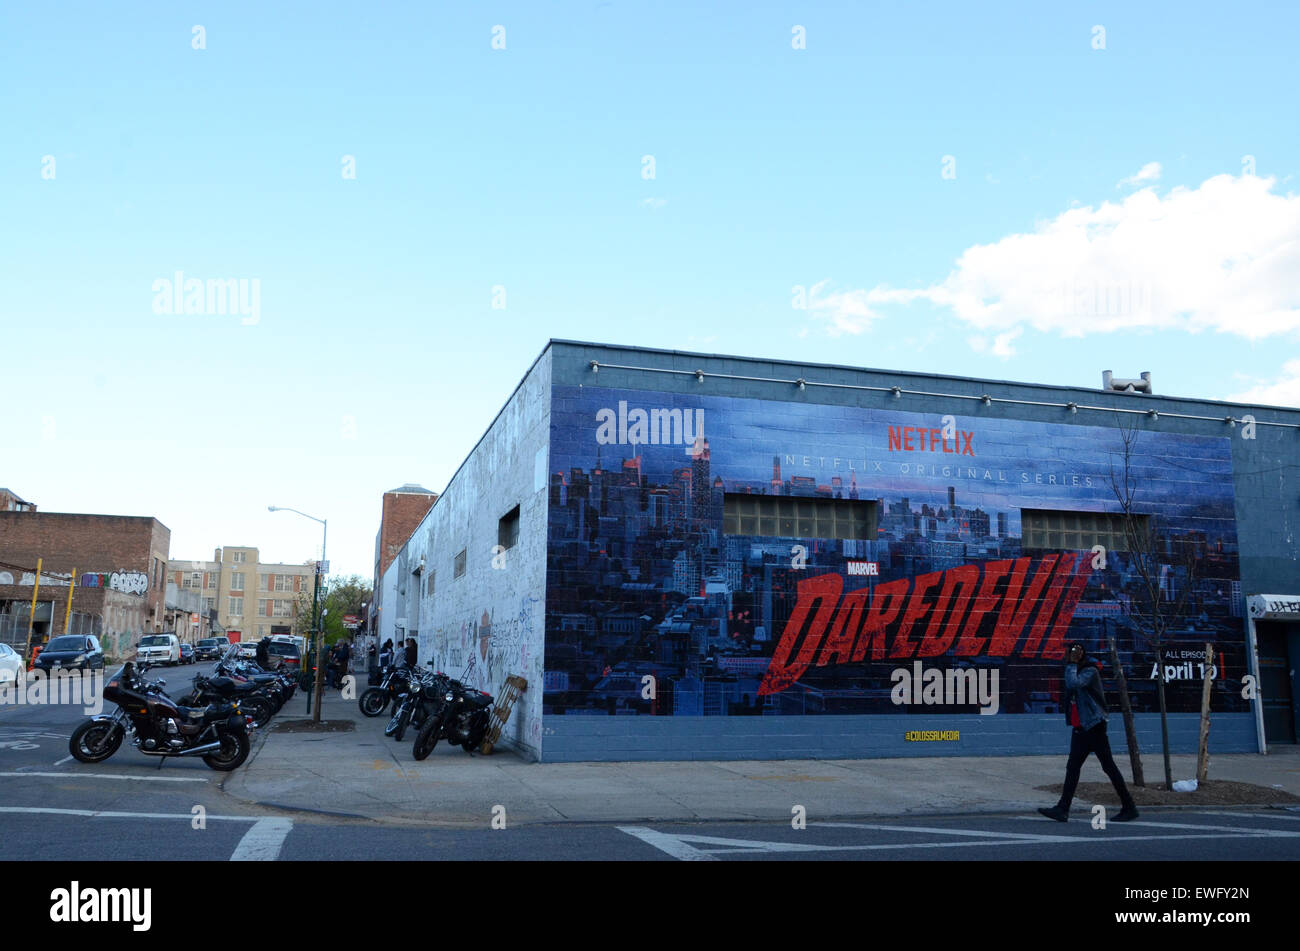 painted billboard adverts new york usa - Stock Image